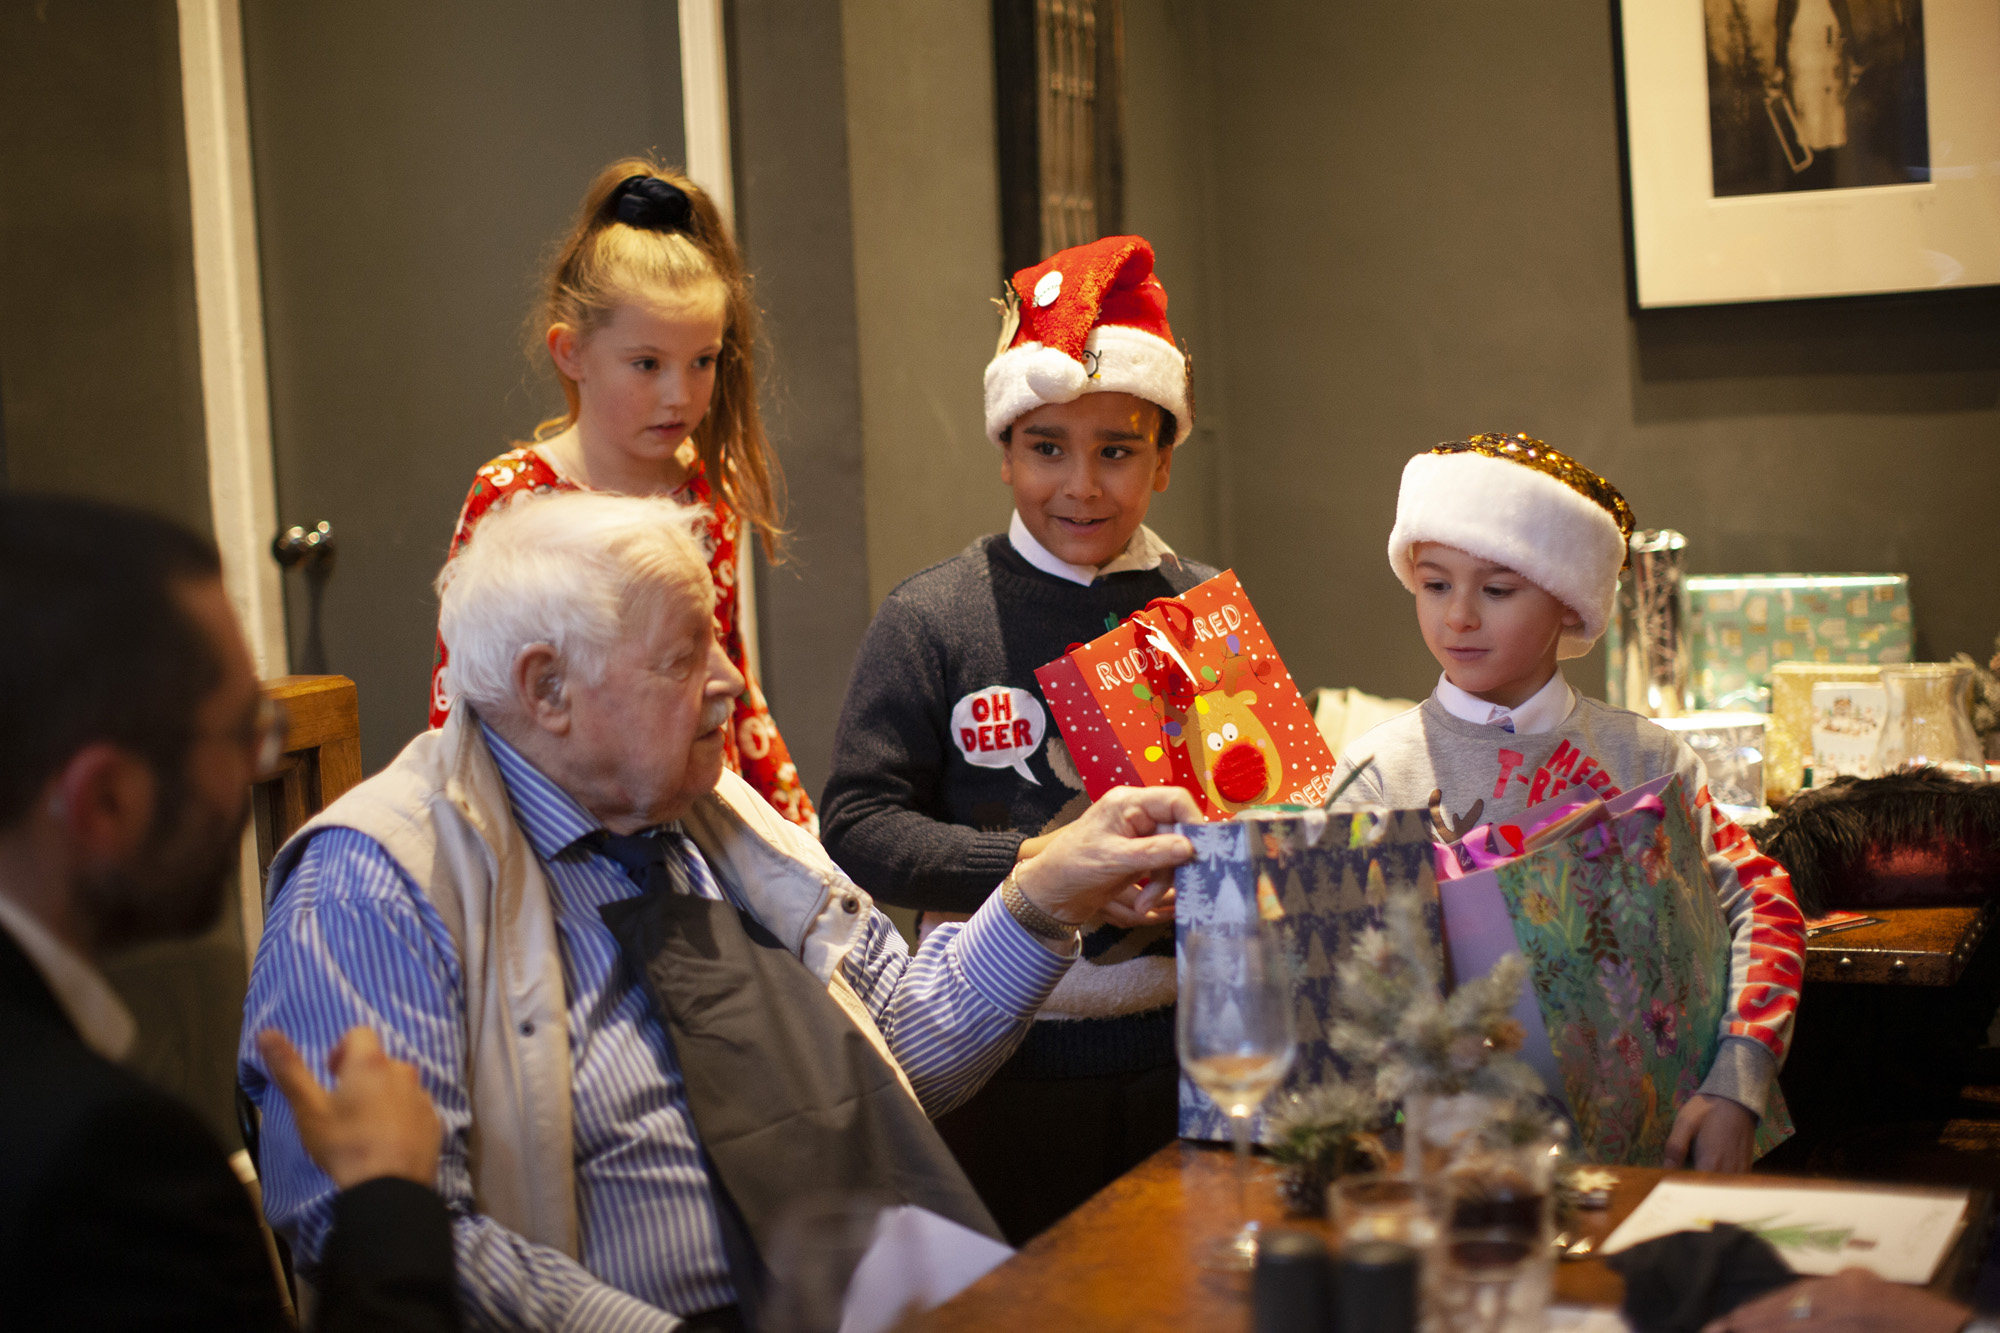 Kids deliver presents to elderly